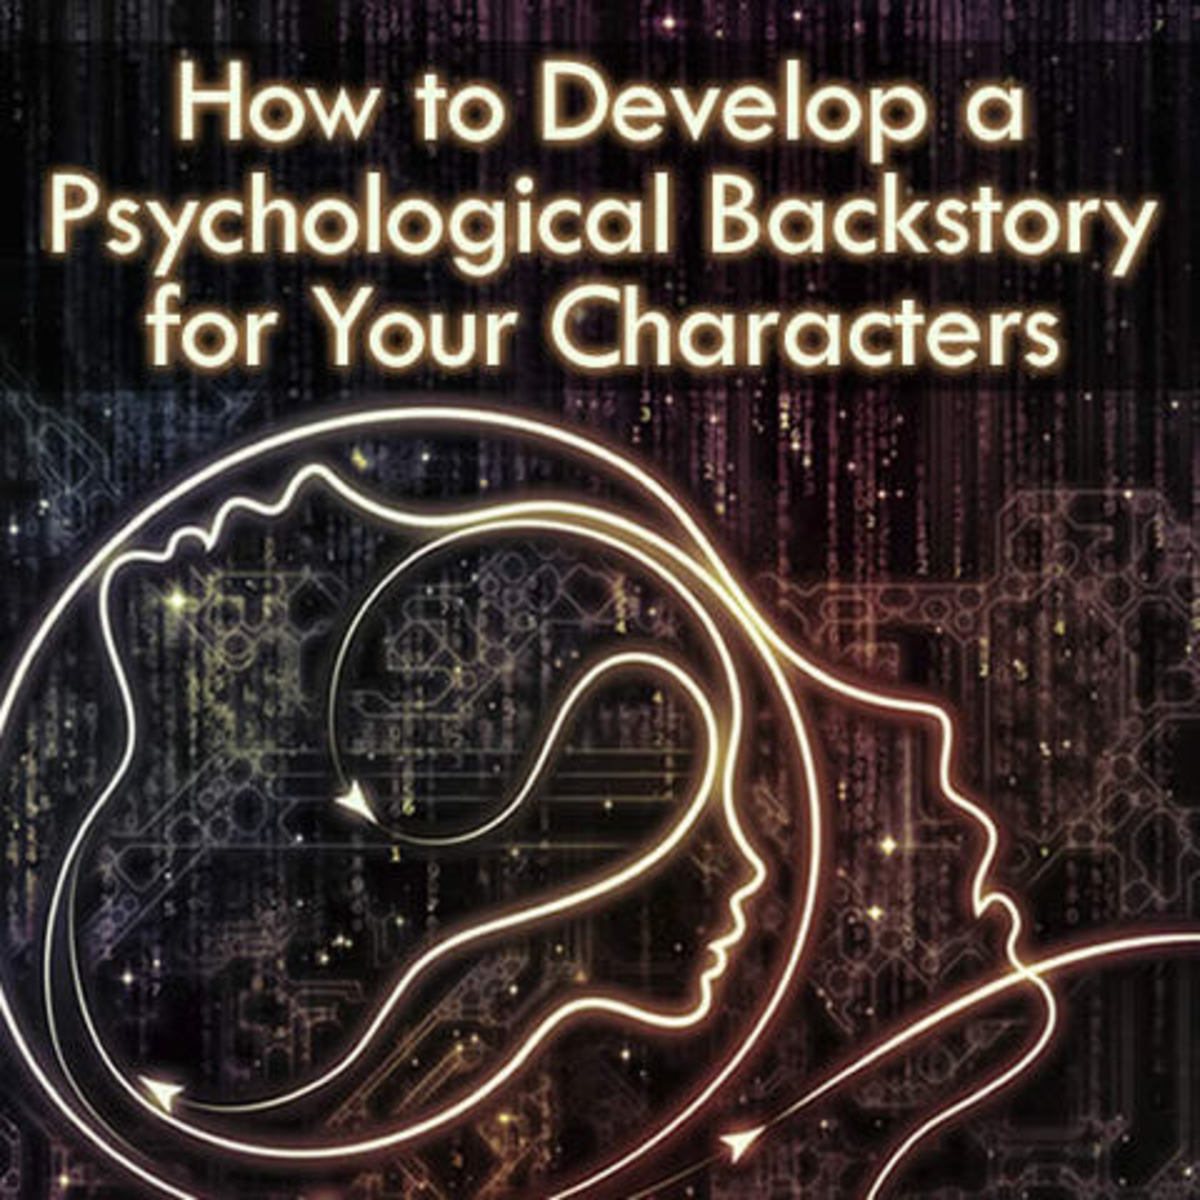 ws-psychological-backstory-500.jpg_medium-1